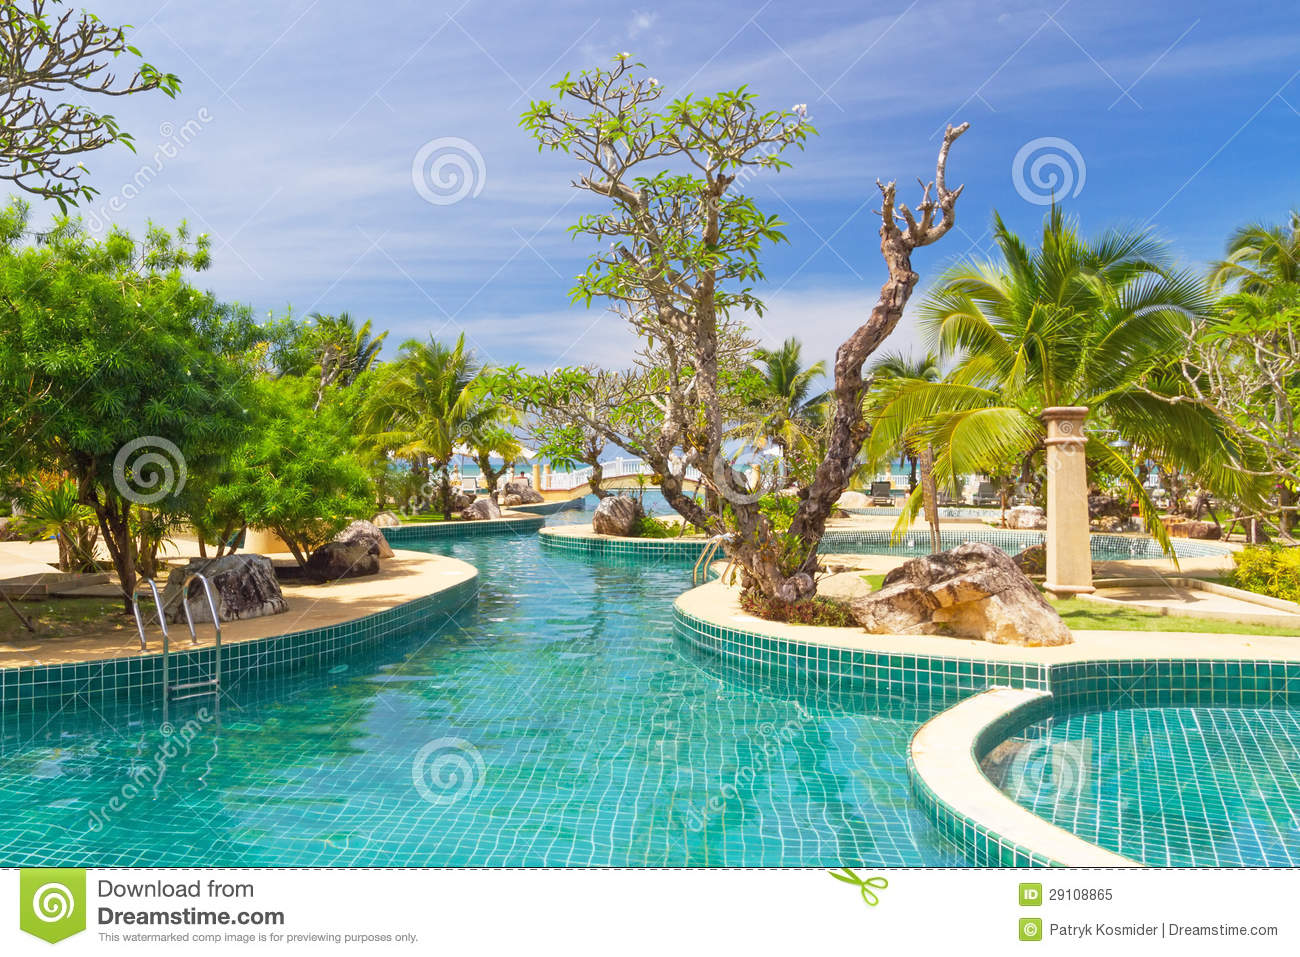 Tropical Garden Scenery In Thailand Royalty Free Stock